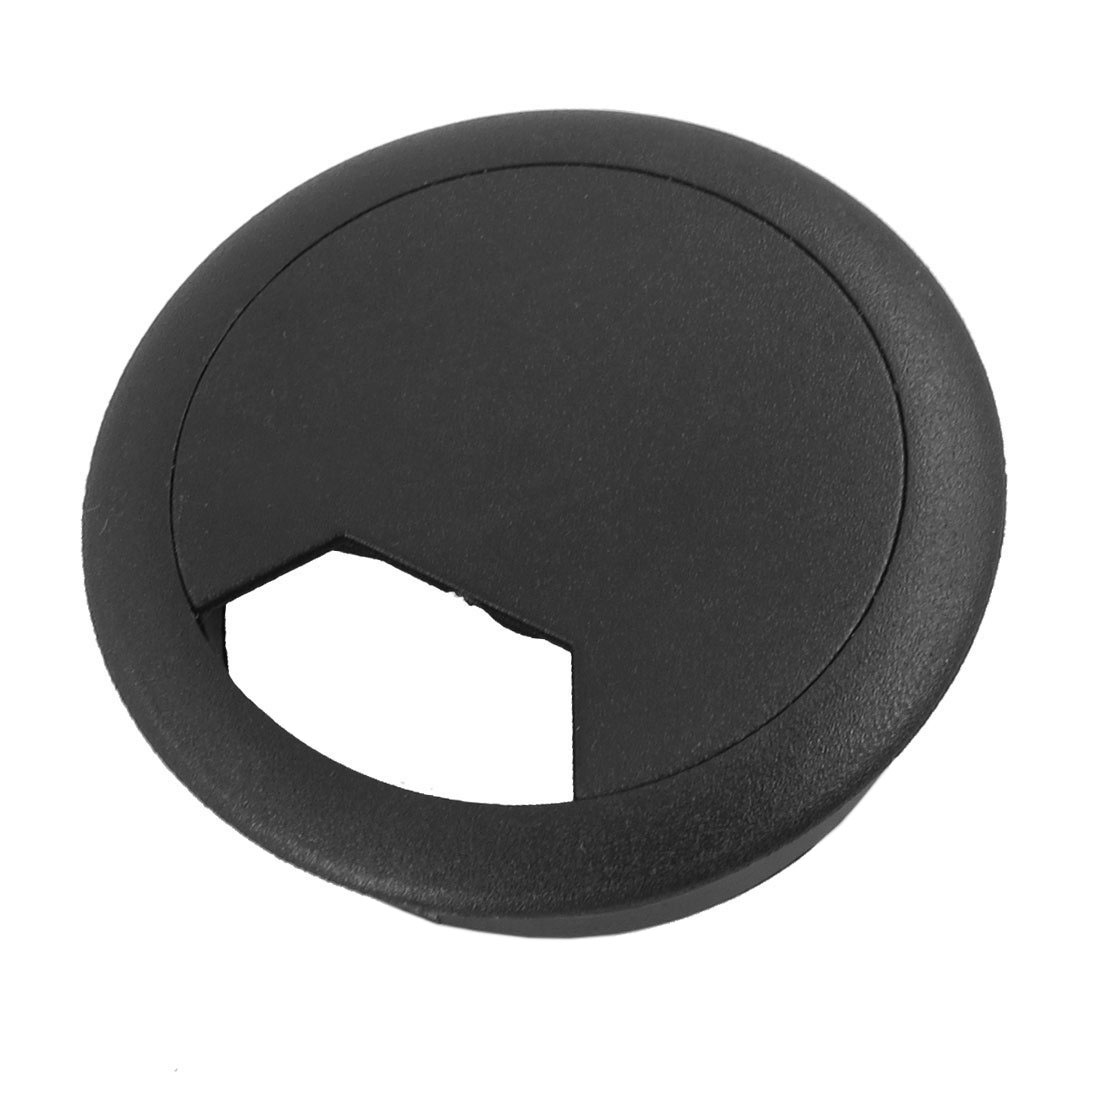 Hot-2 Pcs 50mm Diameter Desk Wire Cord Cable Grommets Hole Cover BlackHot-2 Pcs 50mm Diameter Desk Wire Cord Cable Grommets Hole Cover Black